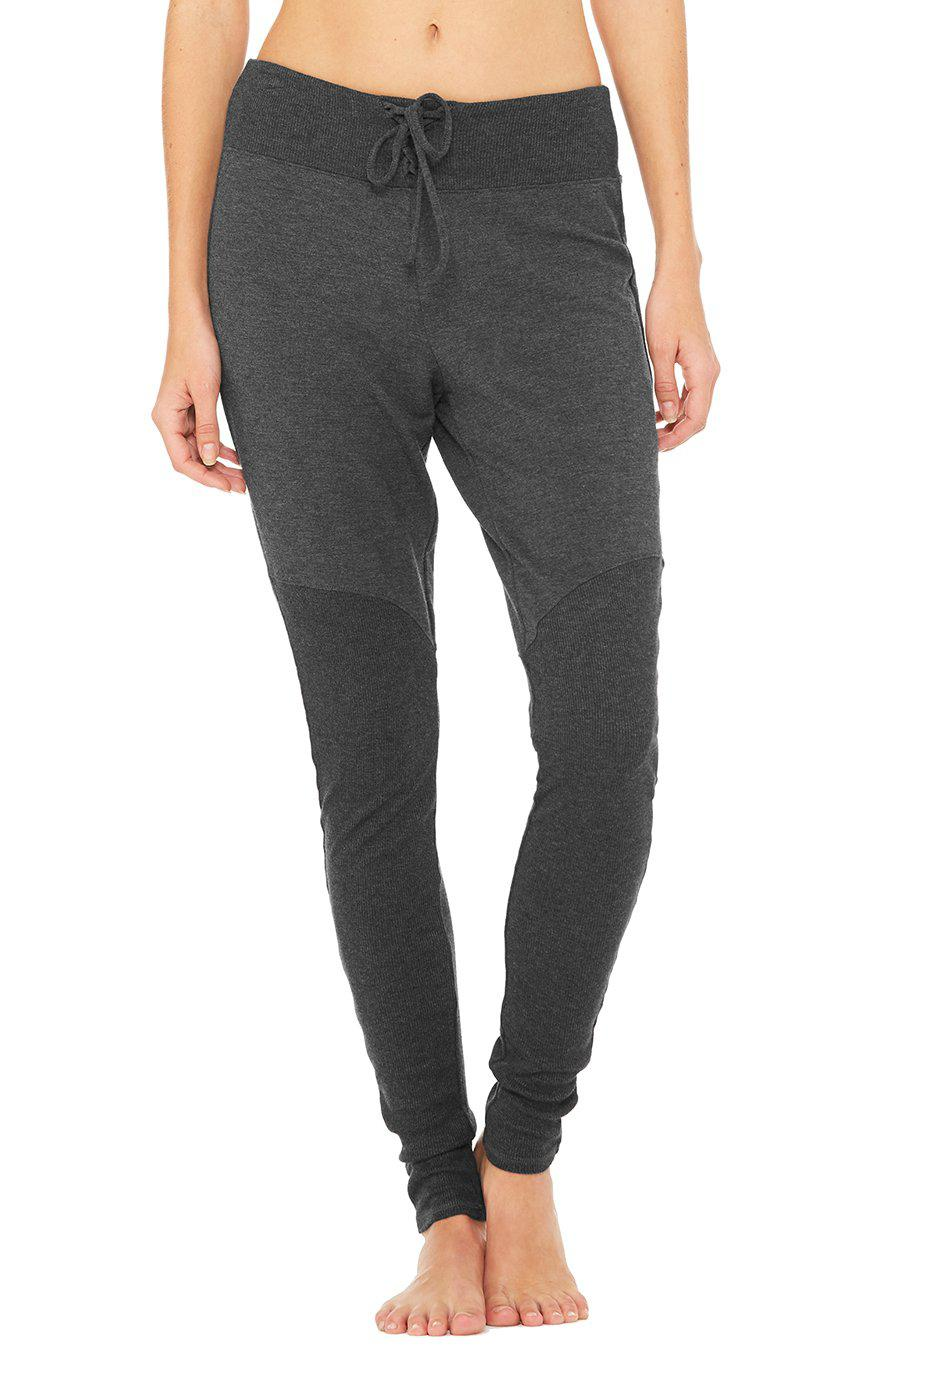 Lace Up Pant - Charcoal Heather